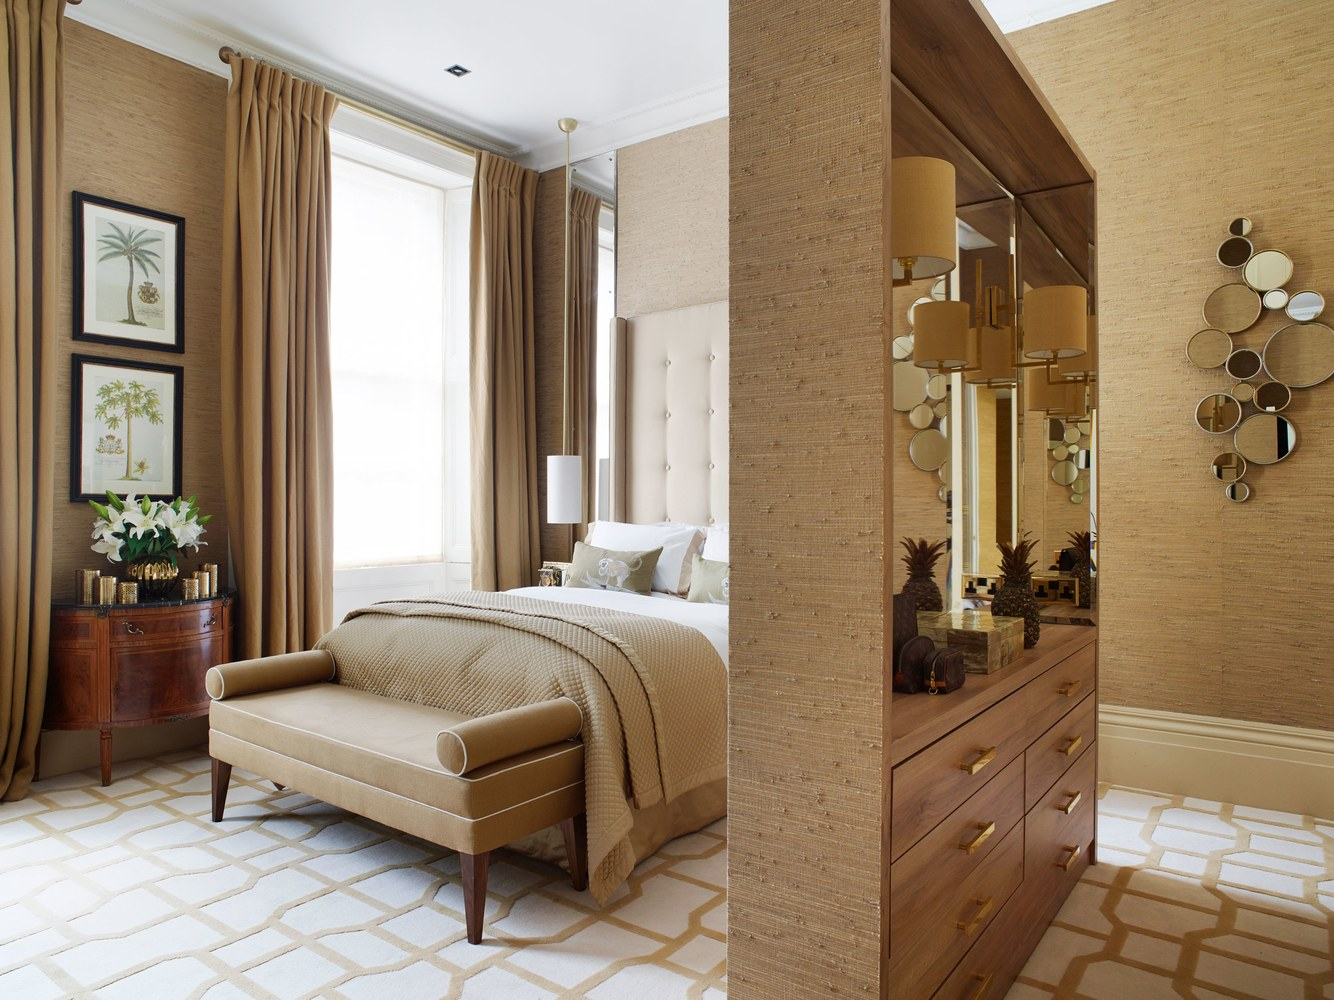 Inspired by her favorite London hotels, the master bedroom combines functionality and old-school glamour with a palette of restful caramels and golds. A partially mirrored wall divider acts as a handy storage and dressing area.